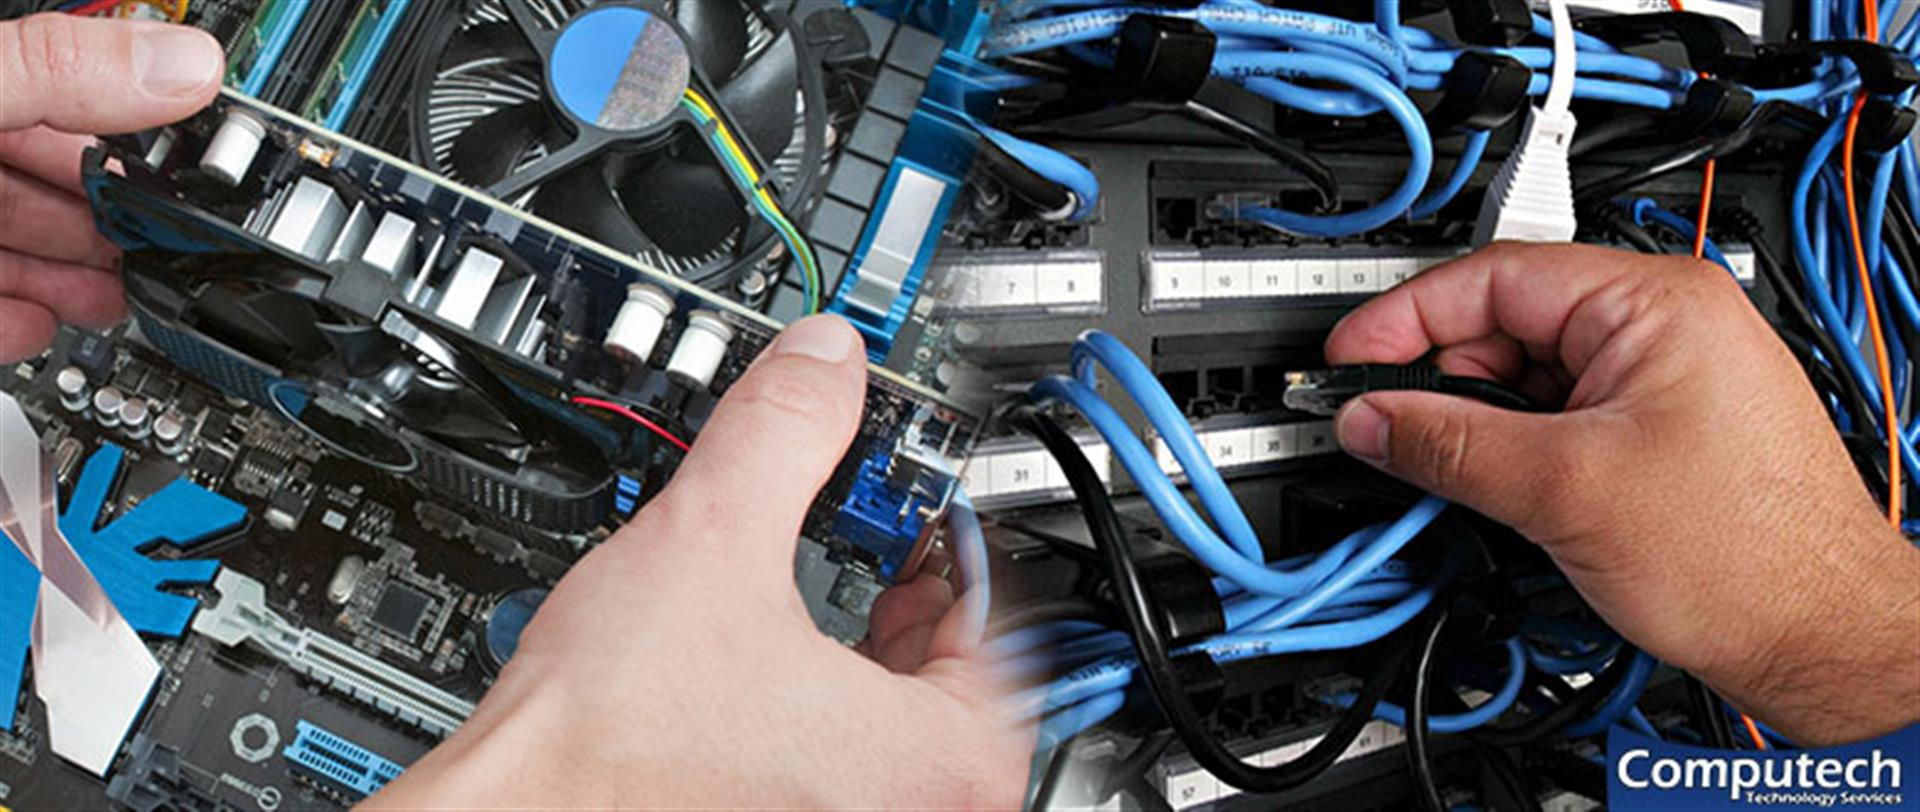 Port Wentworth Georgia On Site PC & Printer Repairs, Networking, Voice & Data Cabling Contractors